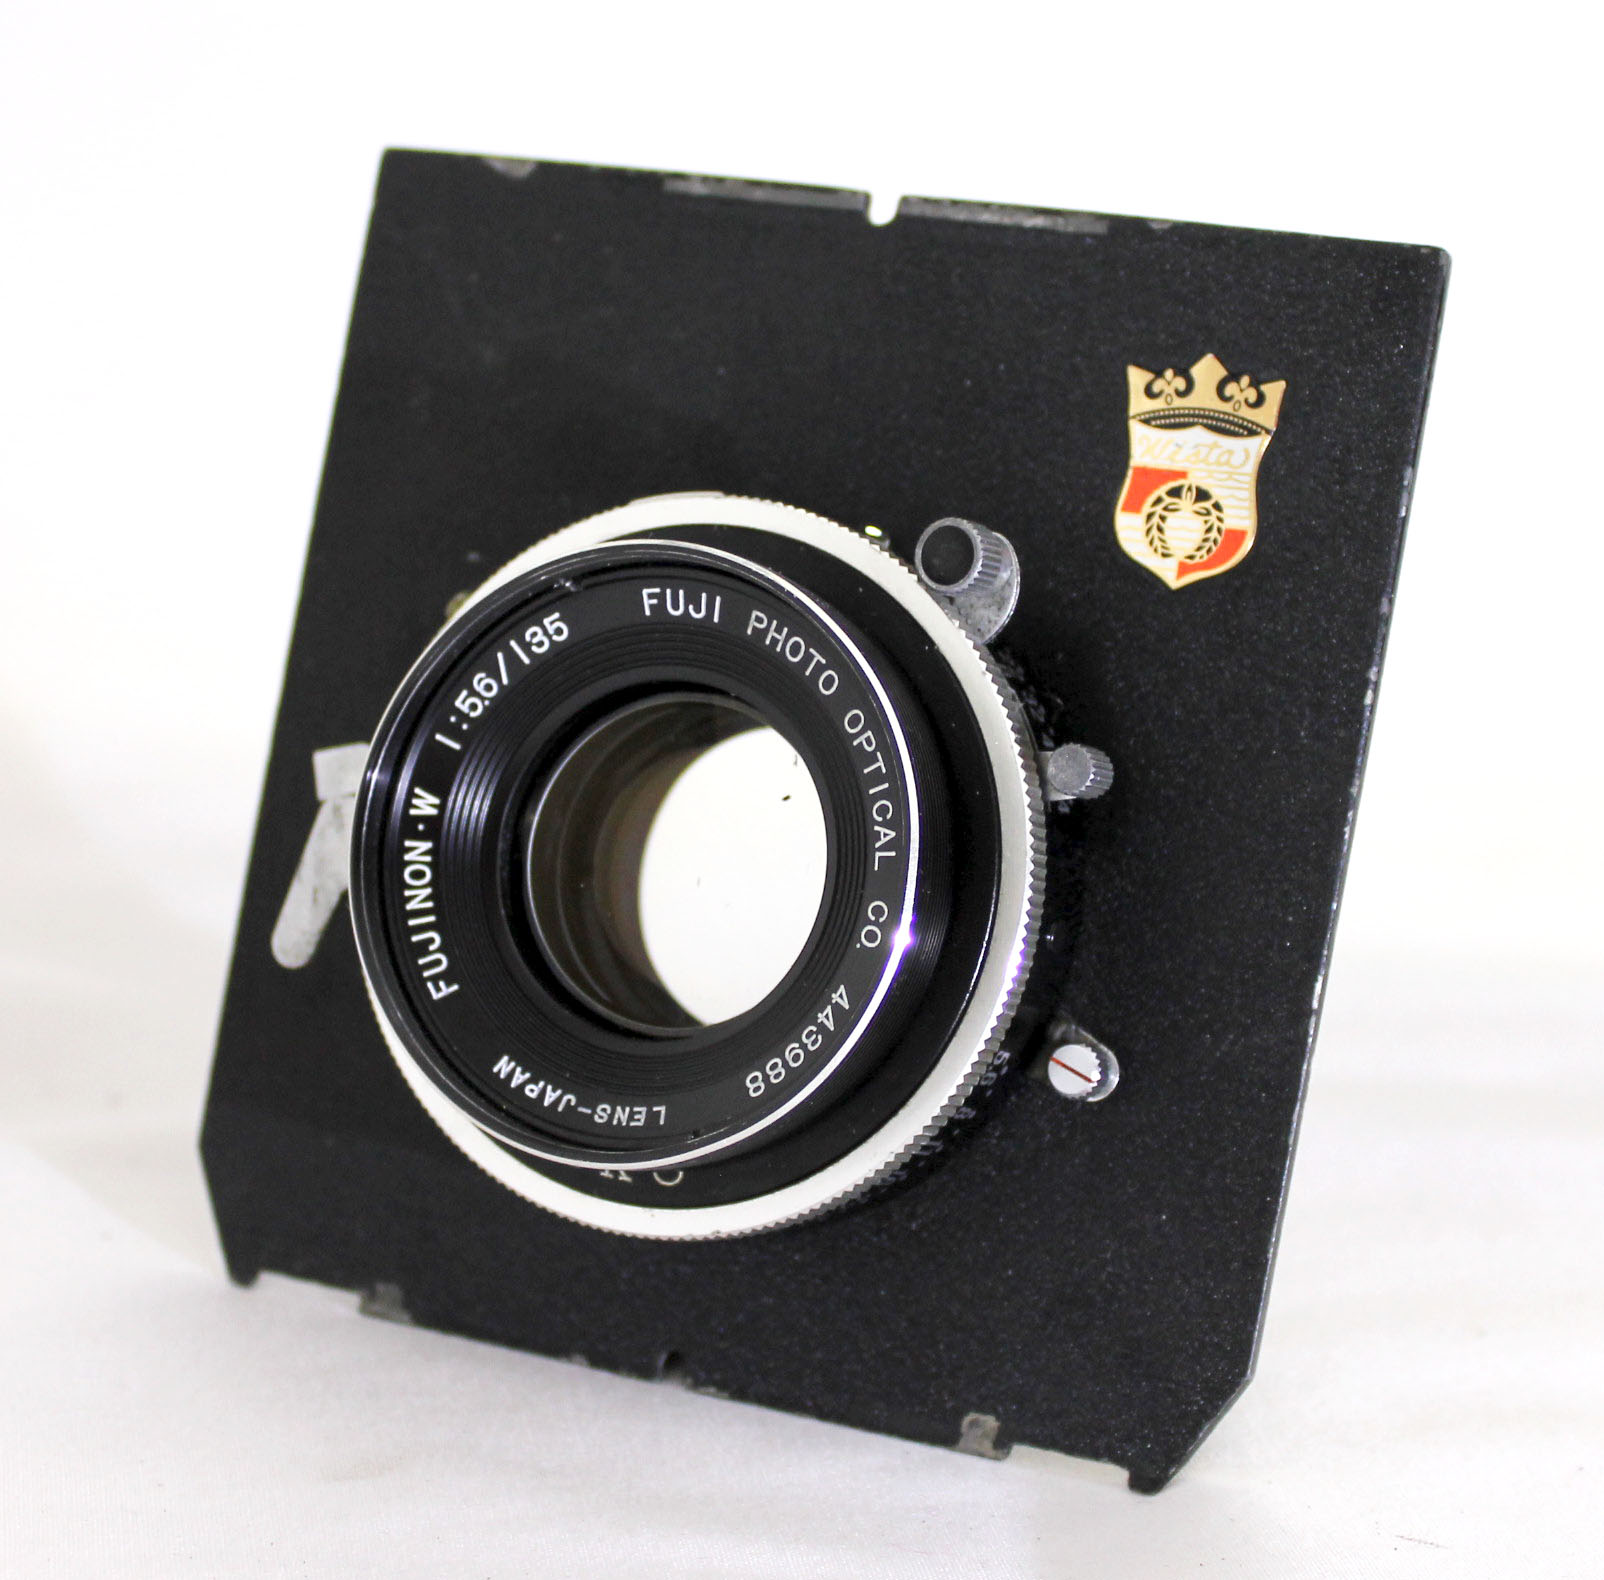 Japan Used Camera Shop | Fuji Fujinon W 135mm F/5.6 4x5 Large Format Lens with Seiko Shutter from Japan